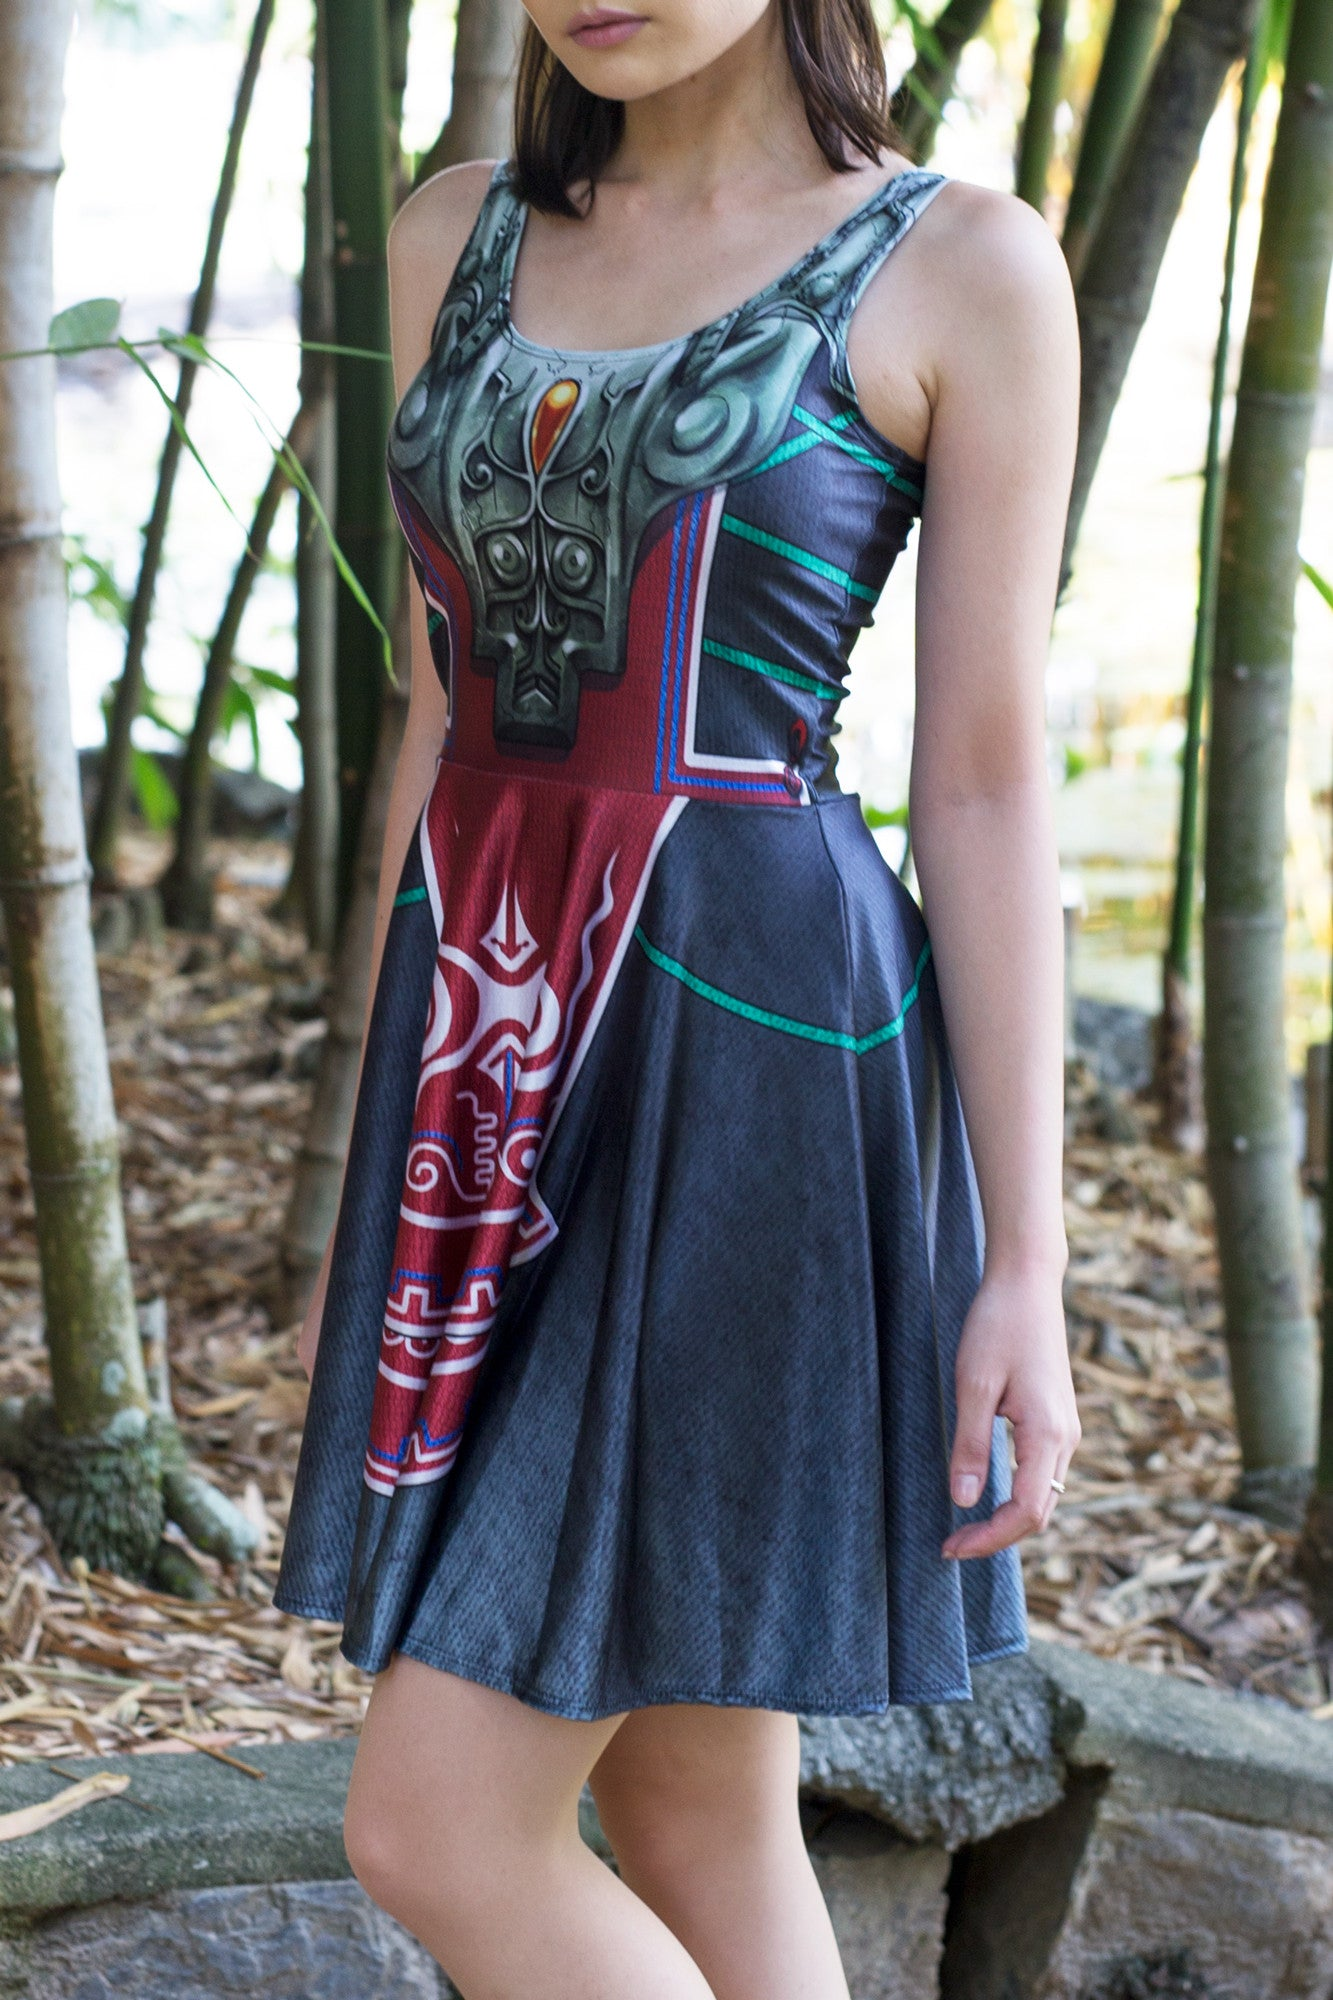 Zant Cosplay Skater Dress